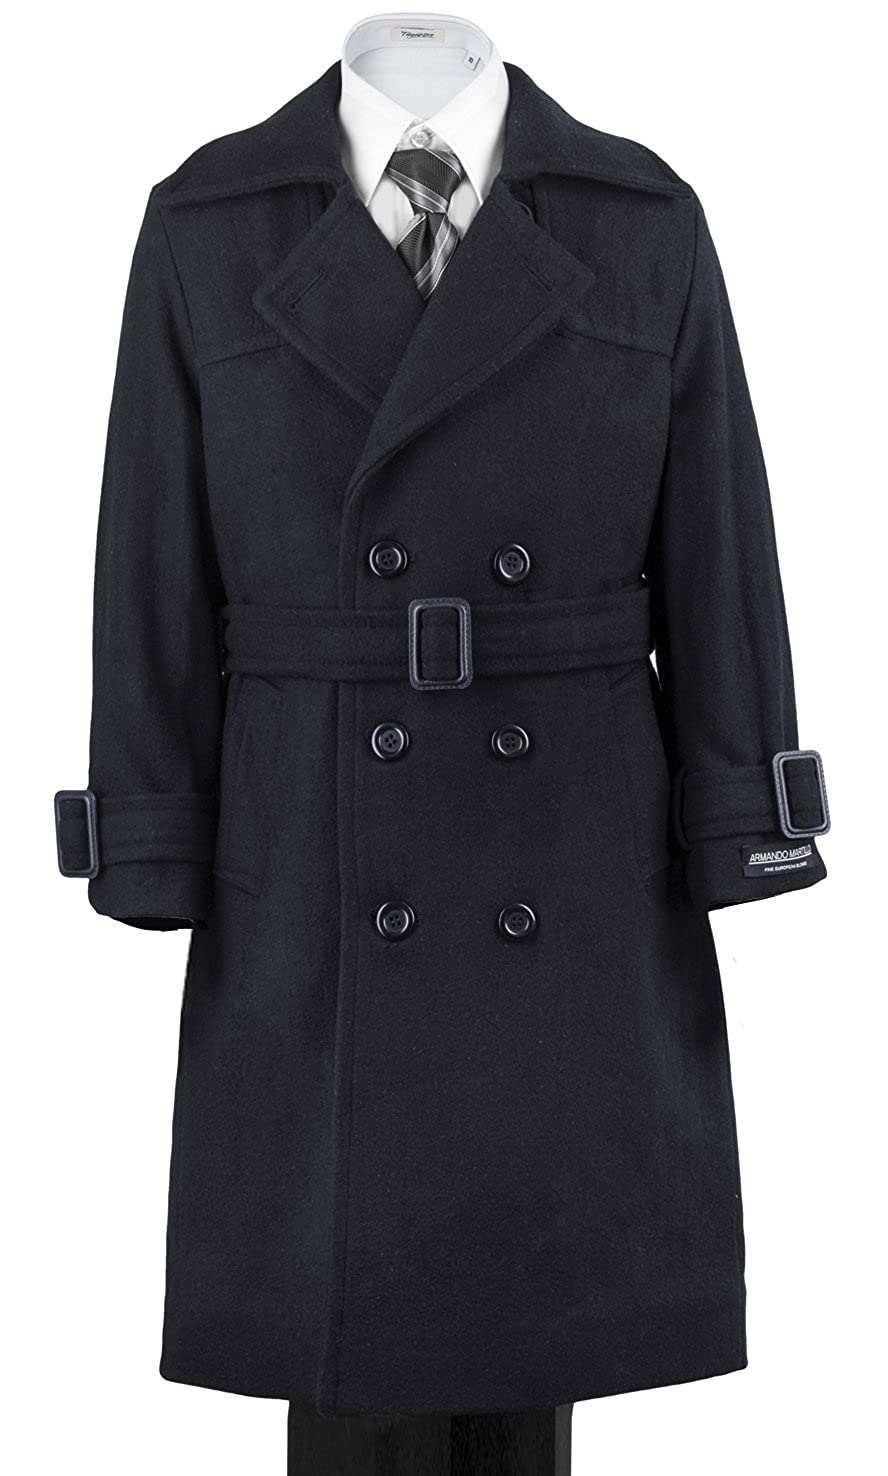 Boys' Warm Winter Wool Dress Coat Double Breasted W/ Hood & Belt Black Navy Grey Parties Holiday Gift & All Formal events 4 618